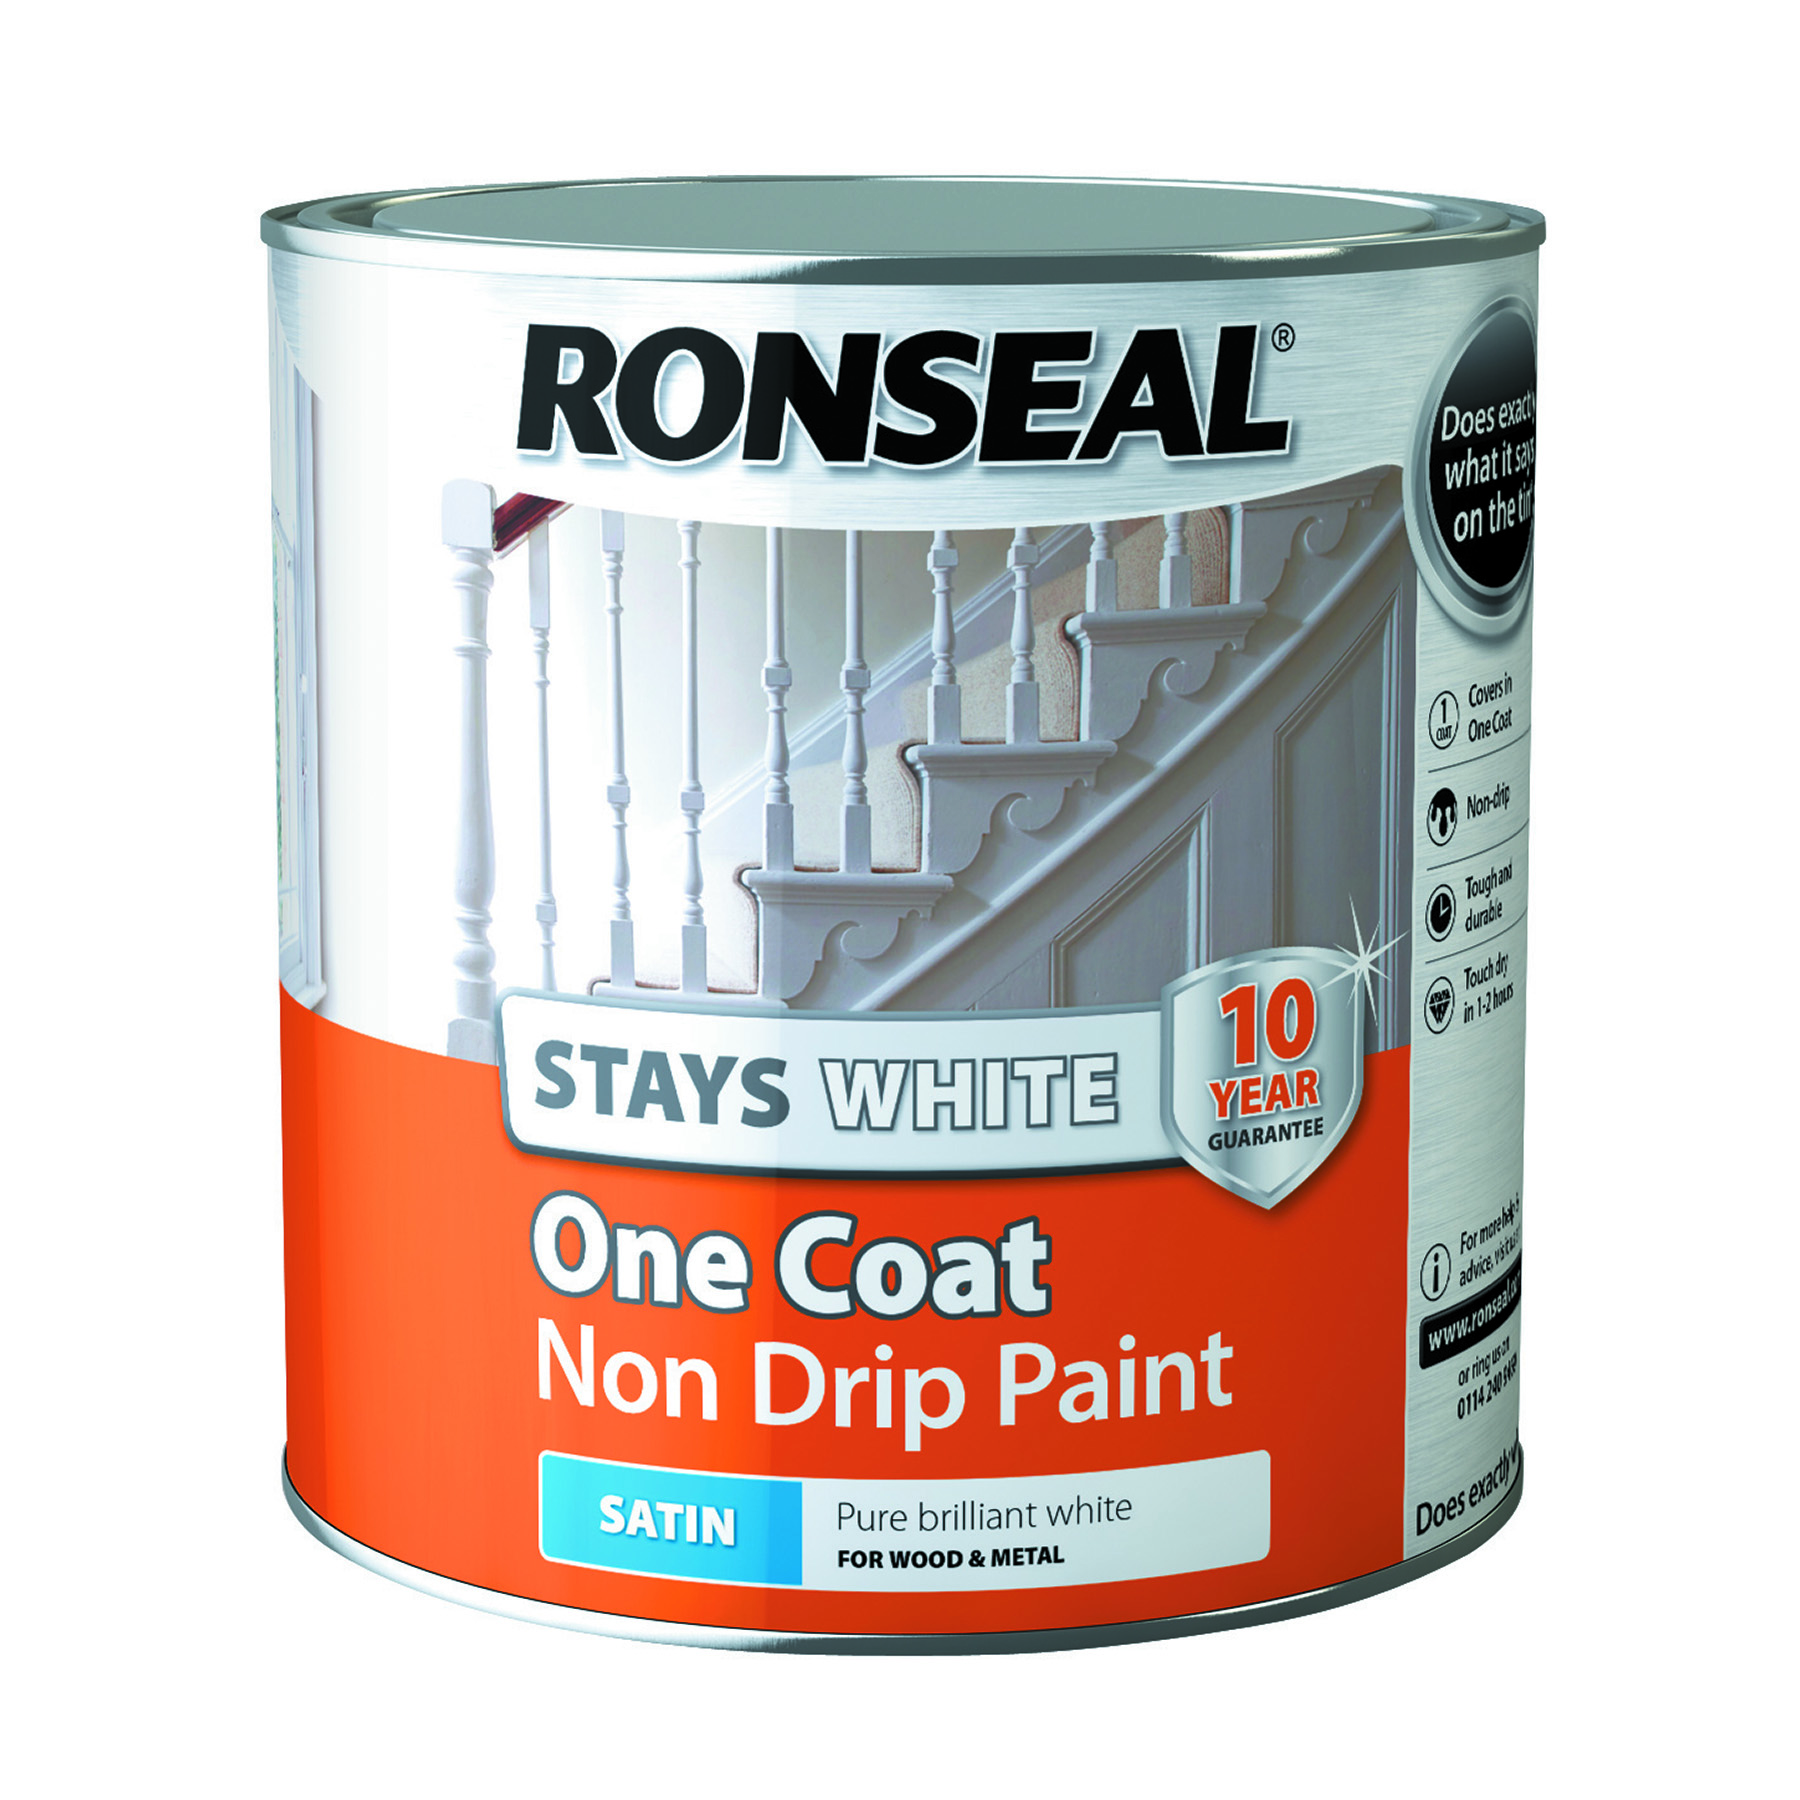 Ronseal Stays White One Coat Interior Wood Paint White Satin - 2.5l